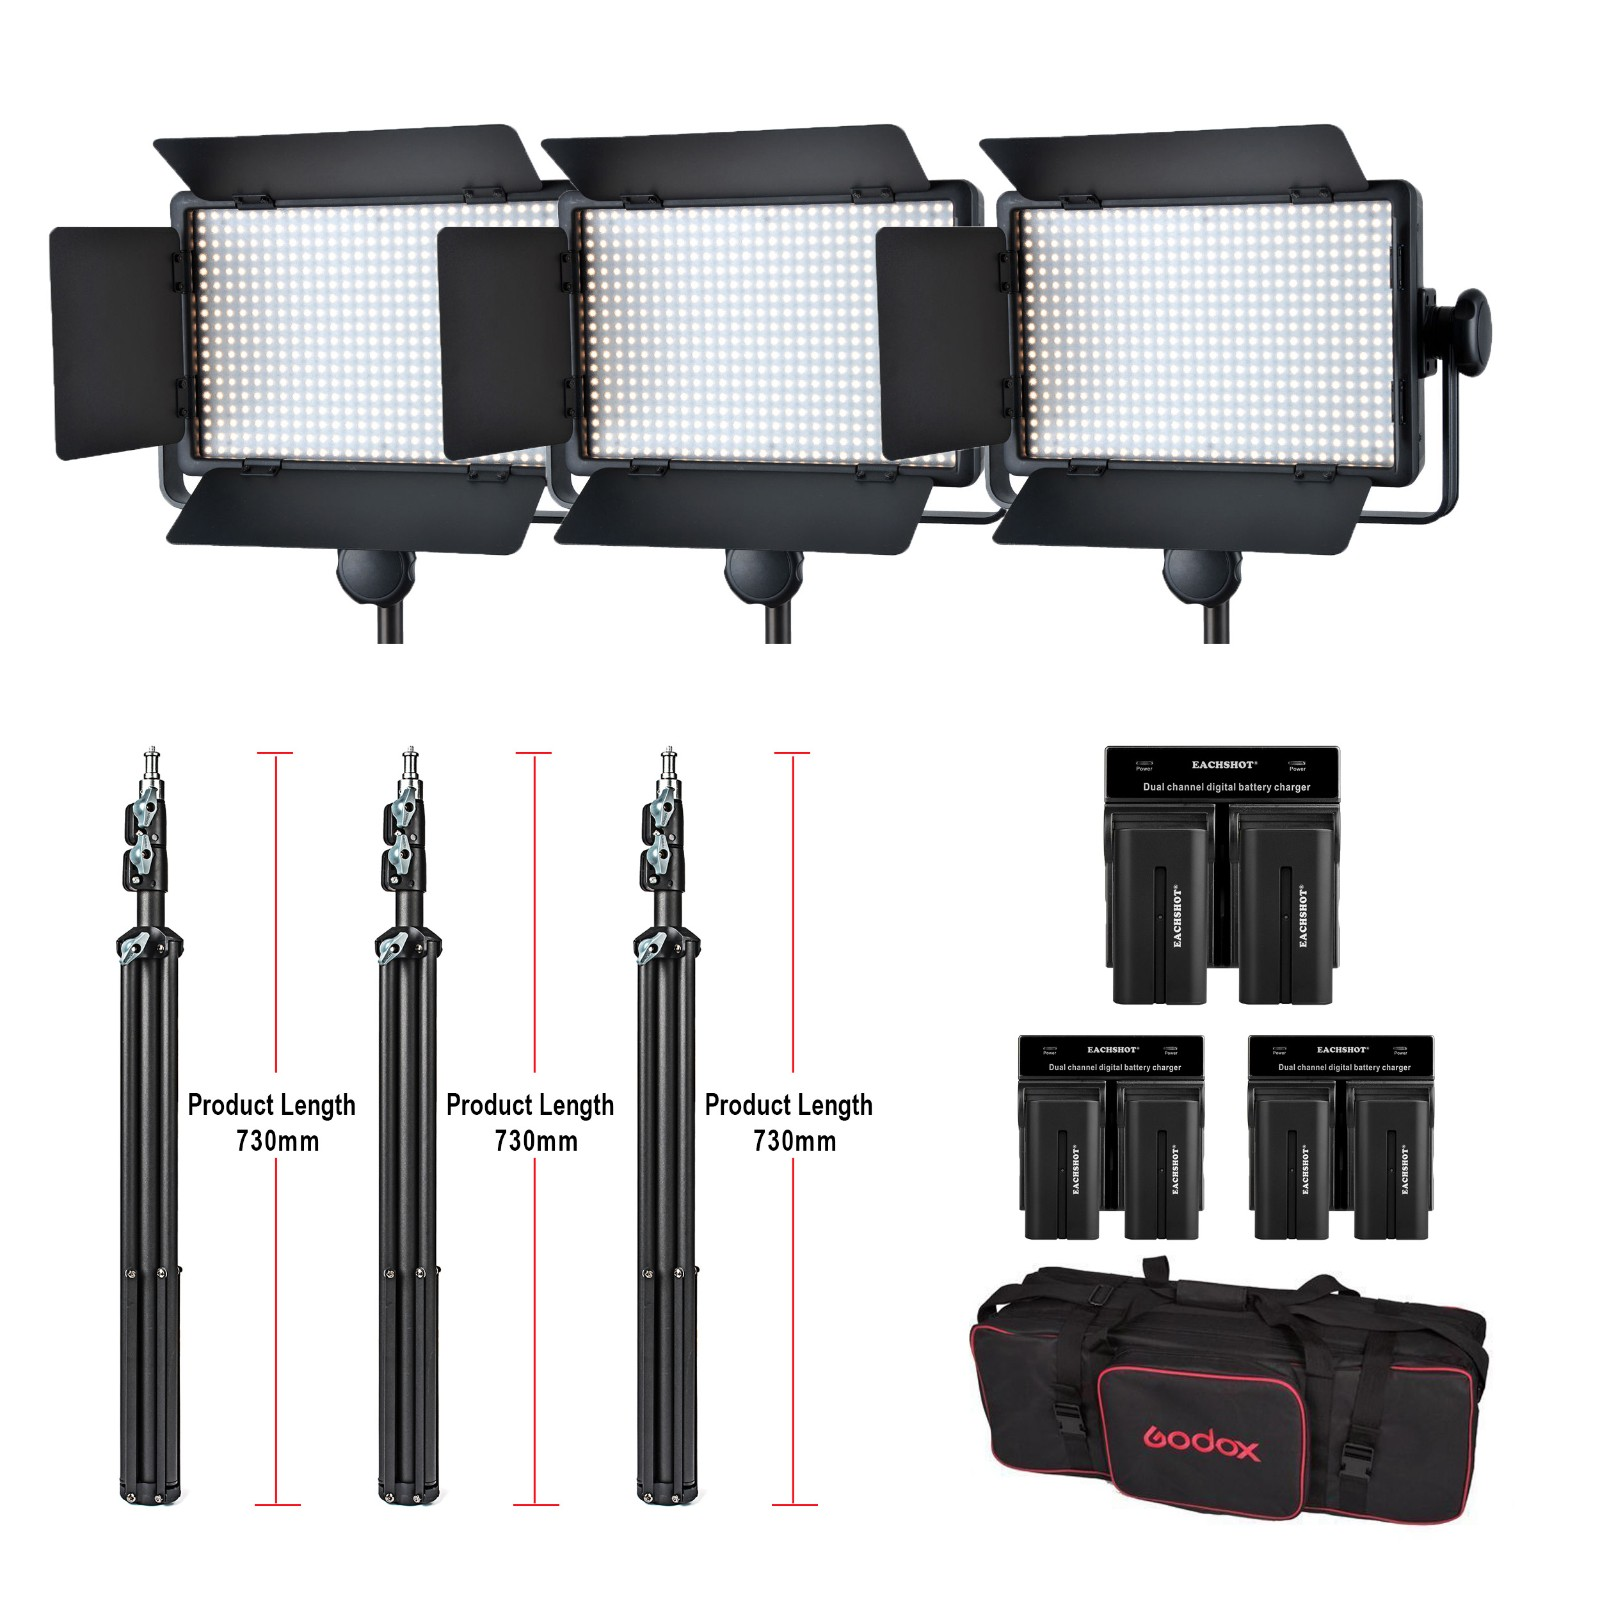 Godox 3pcs LED500W Kit 5600K 504 LED Video Light Panel Lamp & Tripods & battery & battery charger With carrying Bag Lighting godox led308c led video light panel 6600mah li ion battery usb charger kit